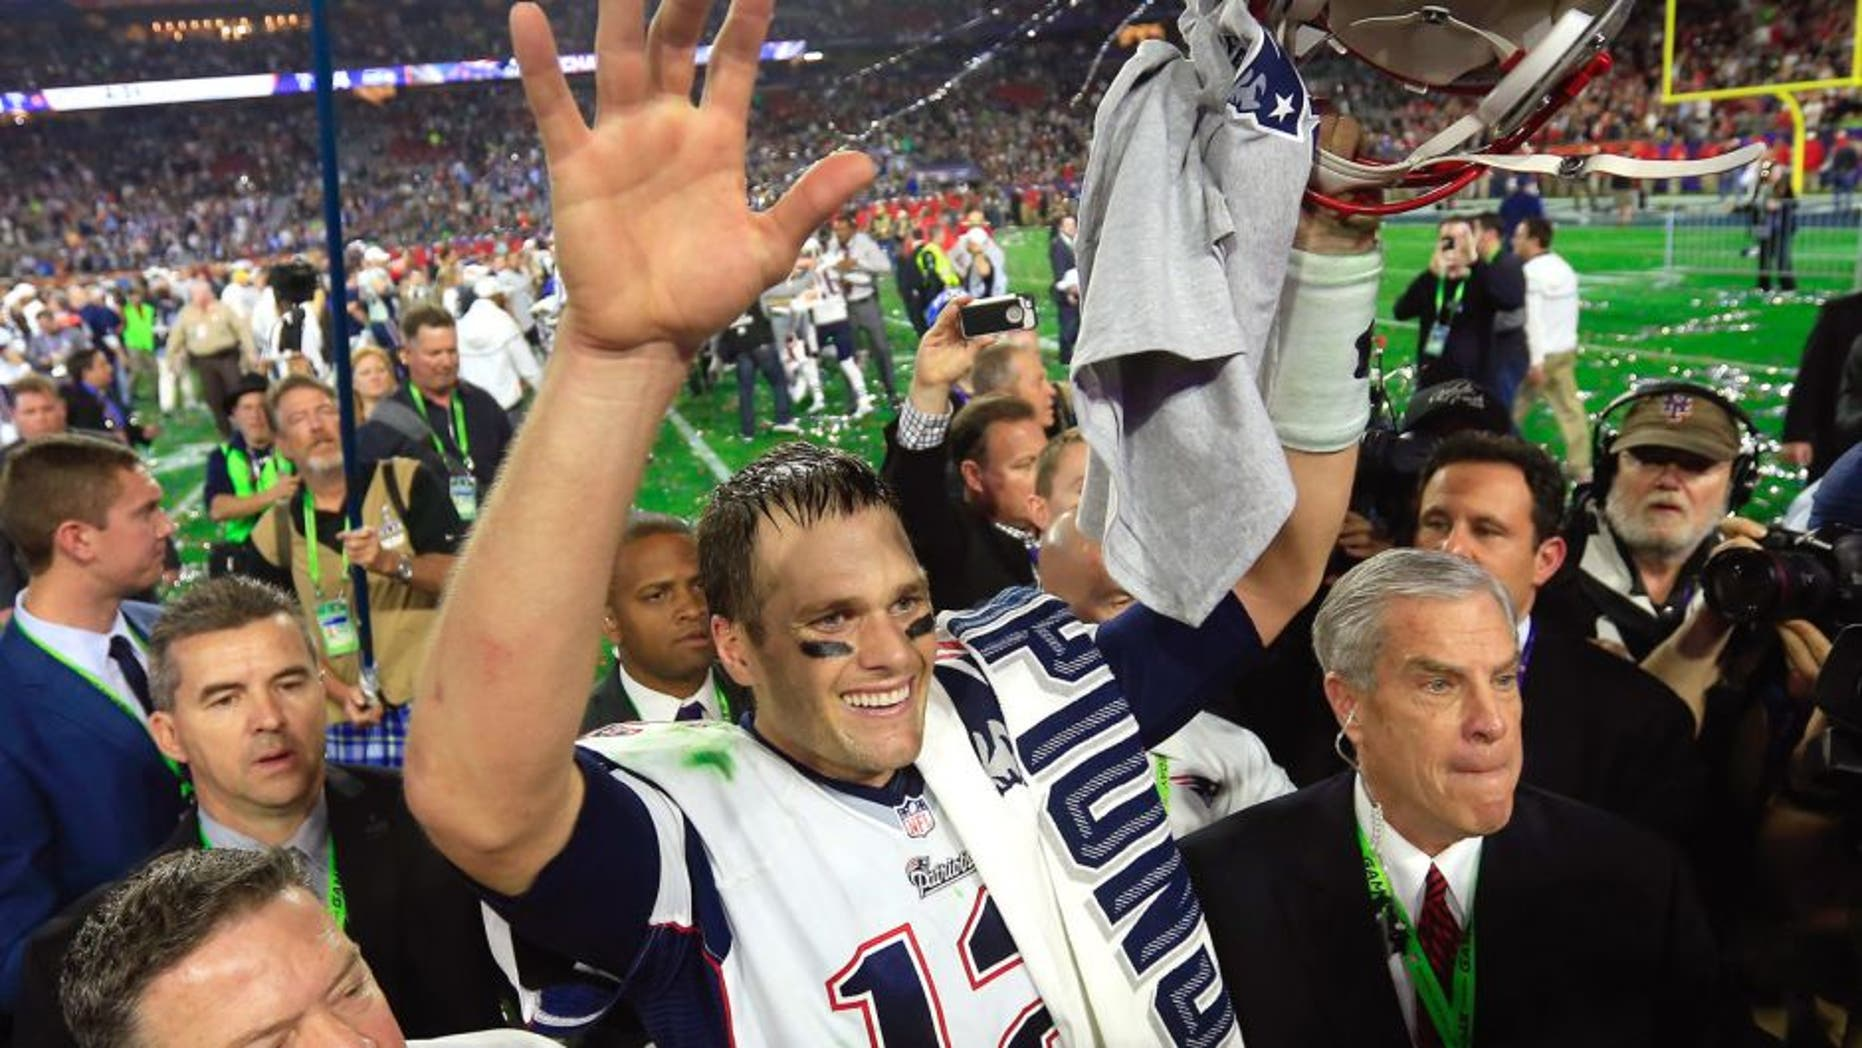 Tom Brady #12 of the New England Patriots celebrates after defeating the Seattle Seahawks during Super Bowl XLIX at University of Phoenix Stadium on February 1, 2015 in Glendale, Arizona. The Patriots defeated the Seahawks 28-24. (Photo by Rob Carr/Getty Images)